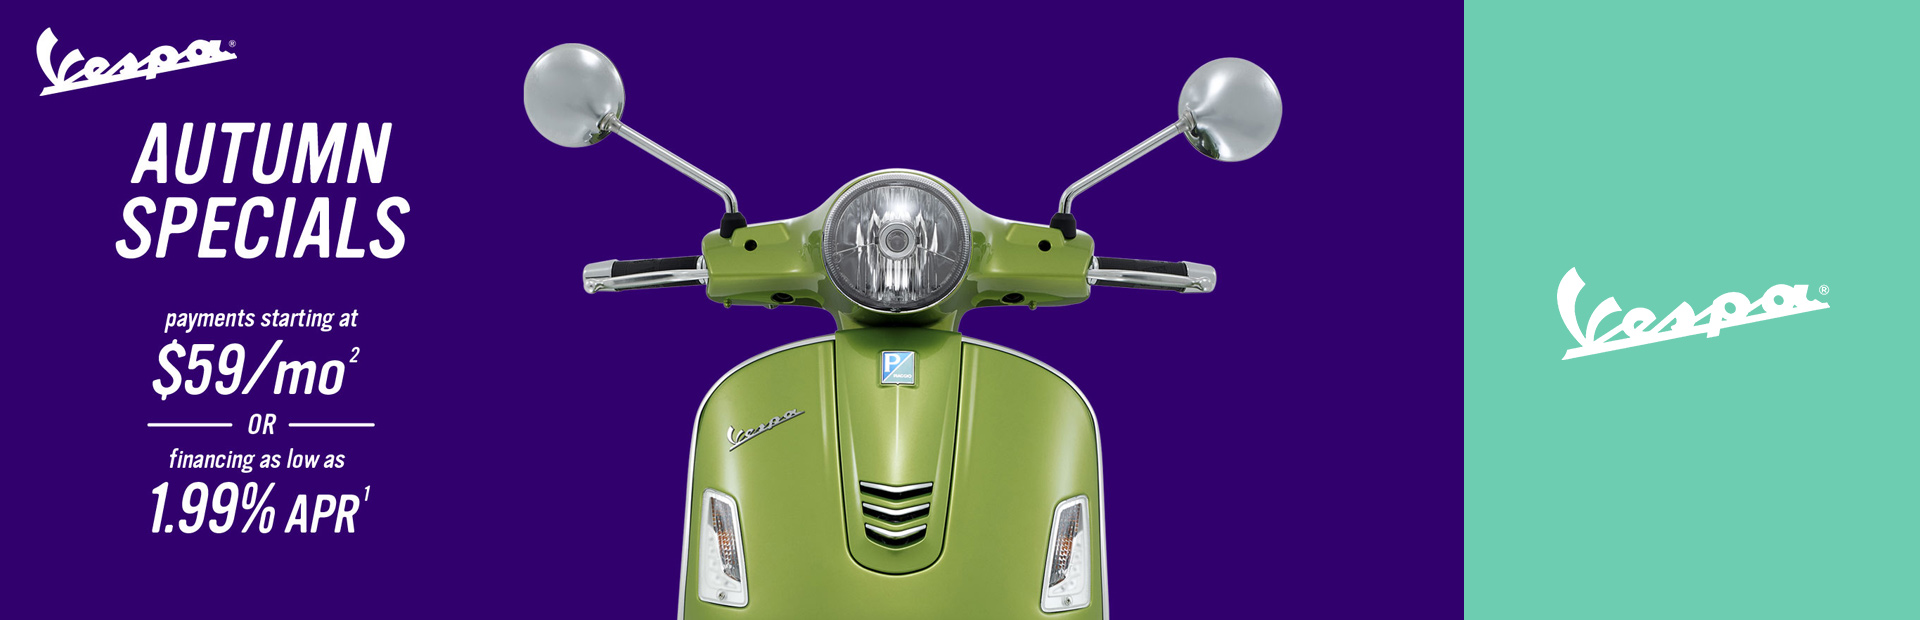 Vespa: Autumn Specials